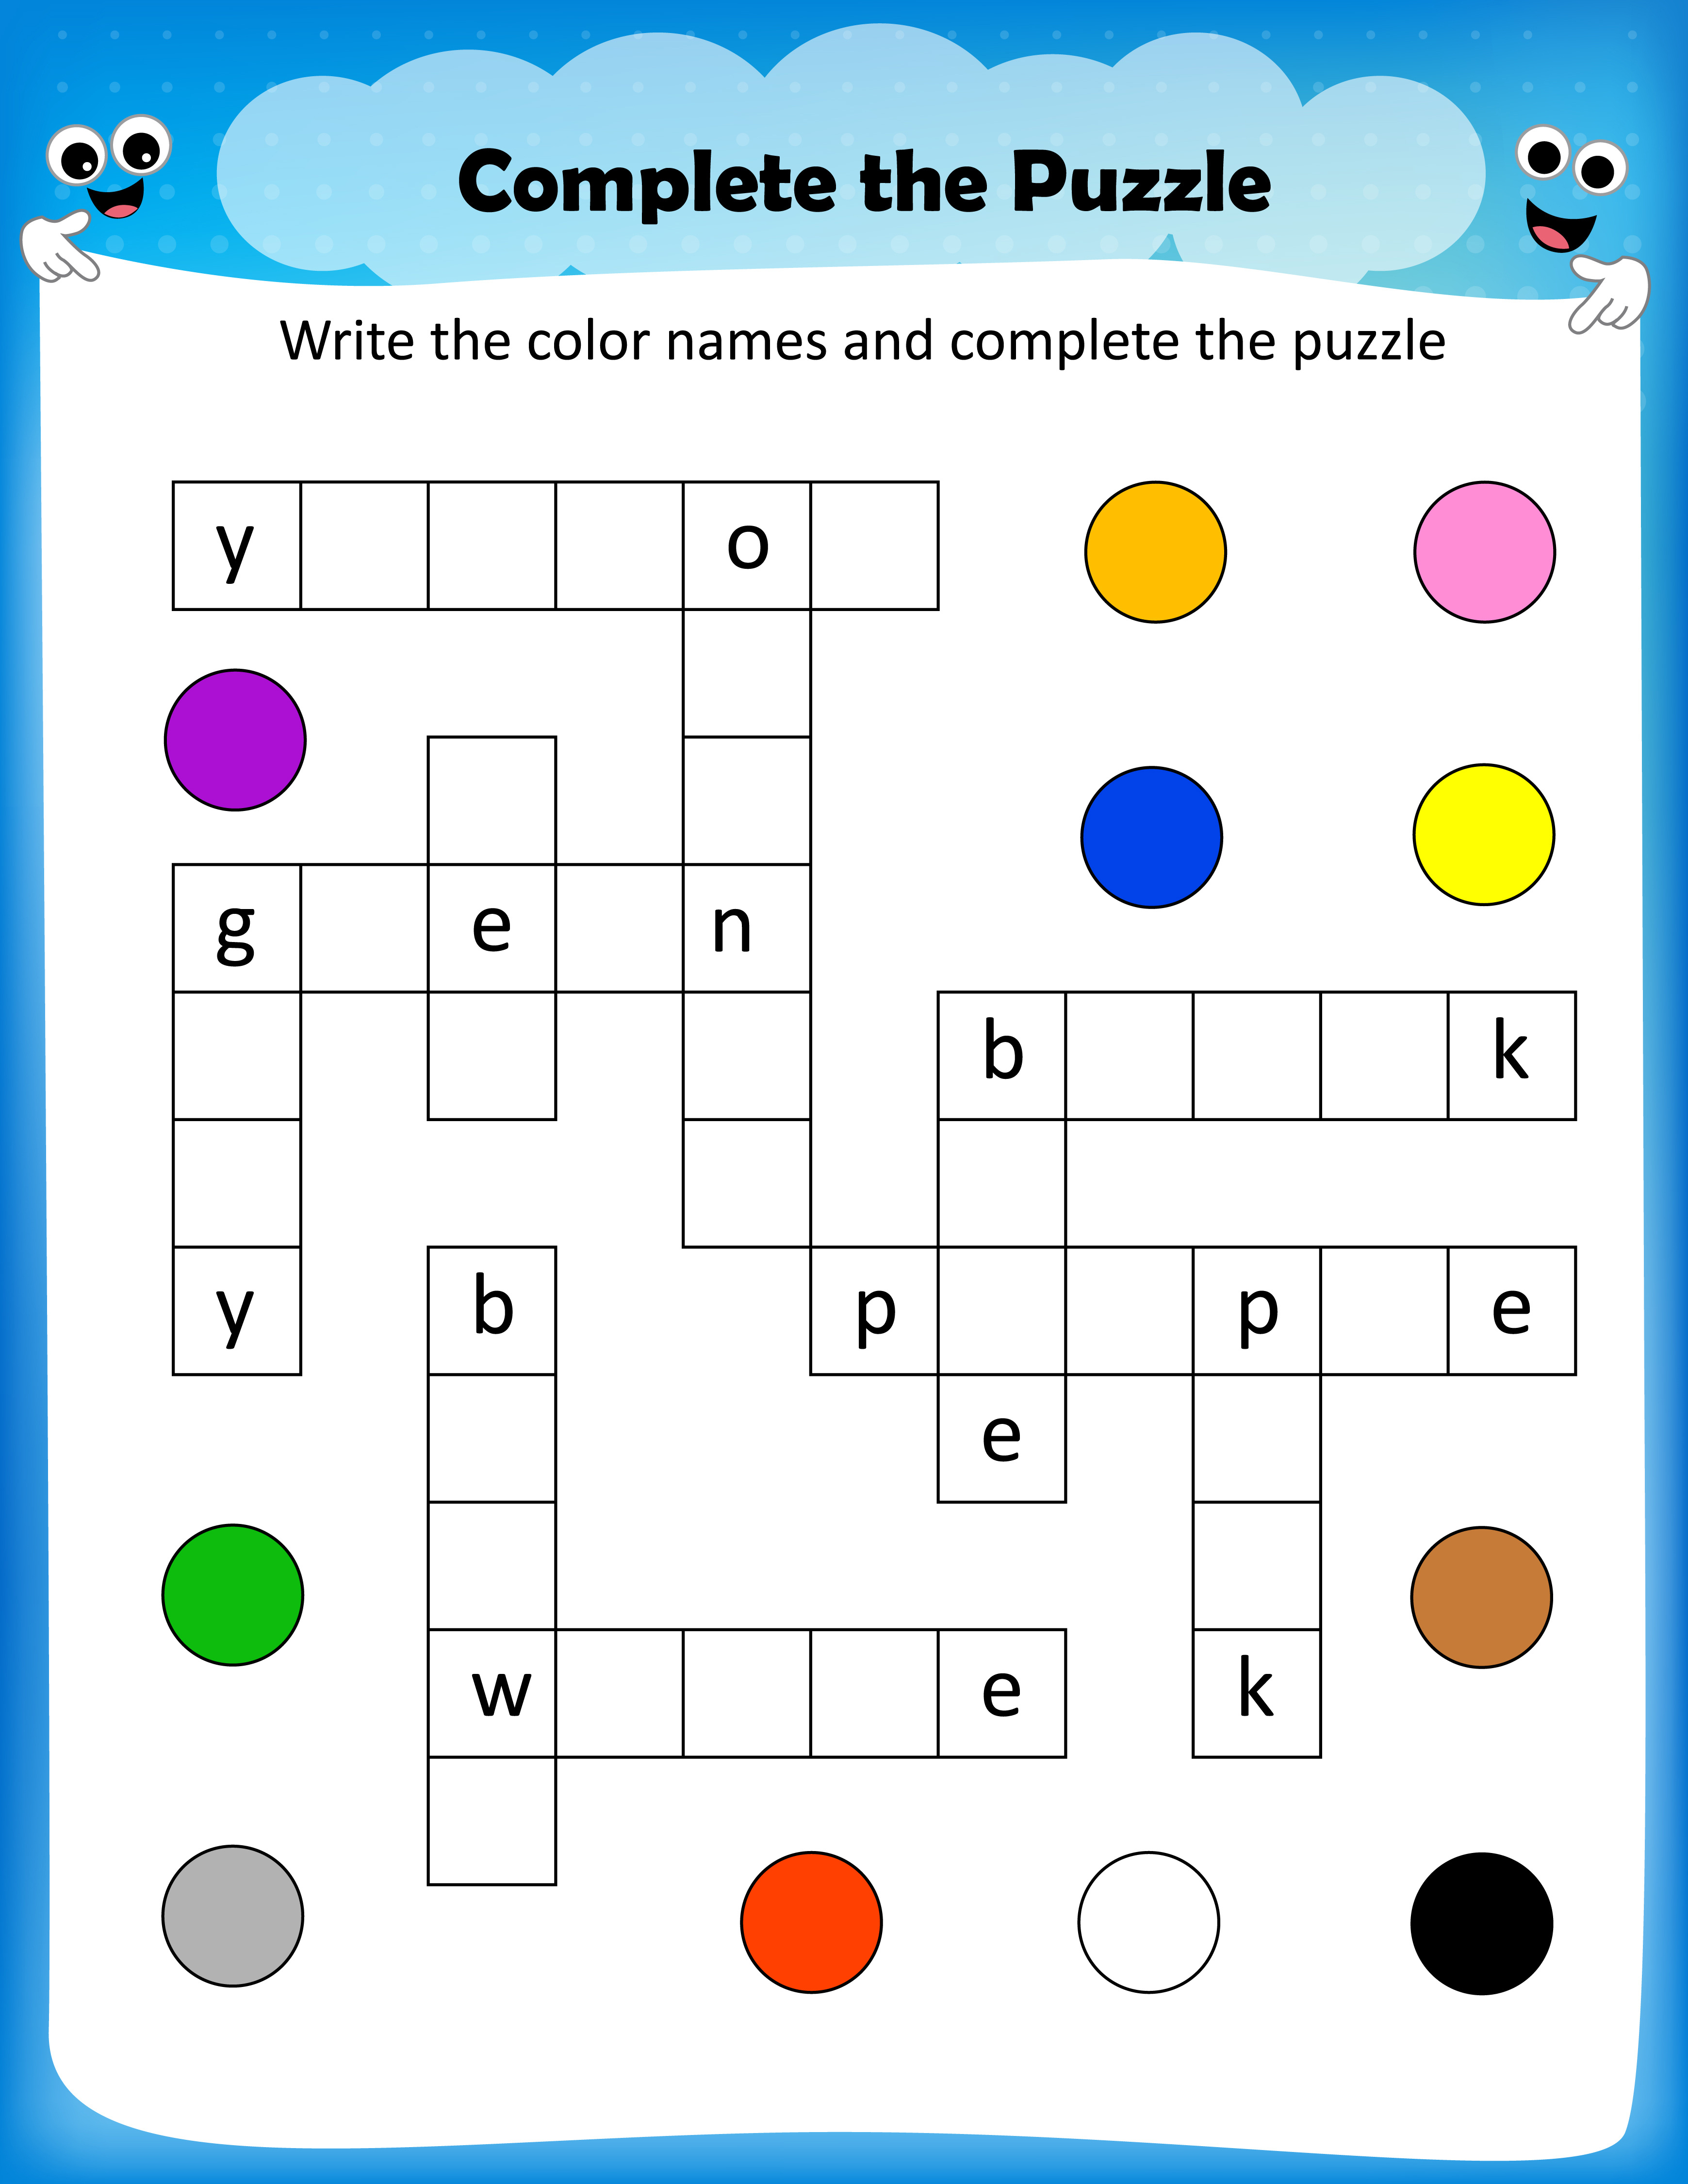 Free Printable Crosswords With Top 10 Benefits For Our Kids - Free Printable Crossword Puzzles For Kids